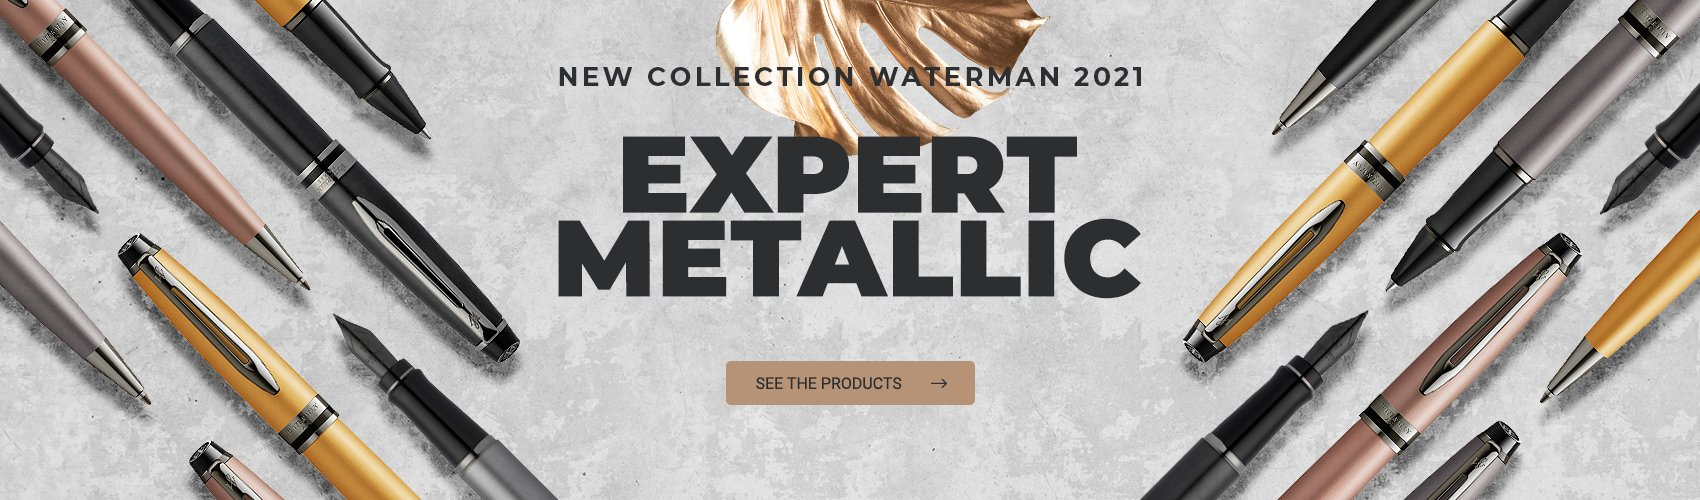 New Waterman Expert Metalic line